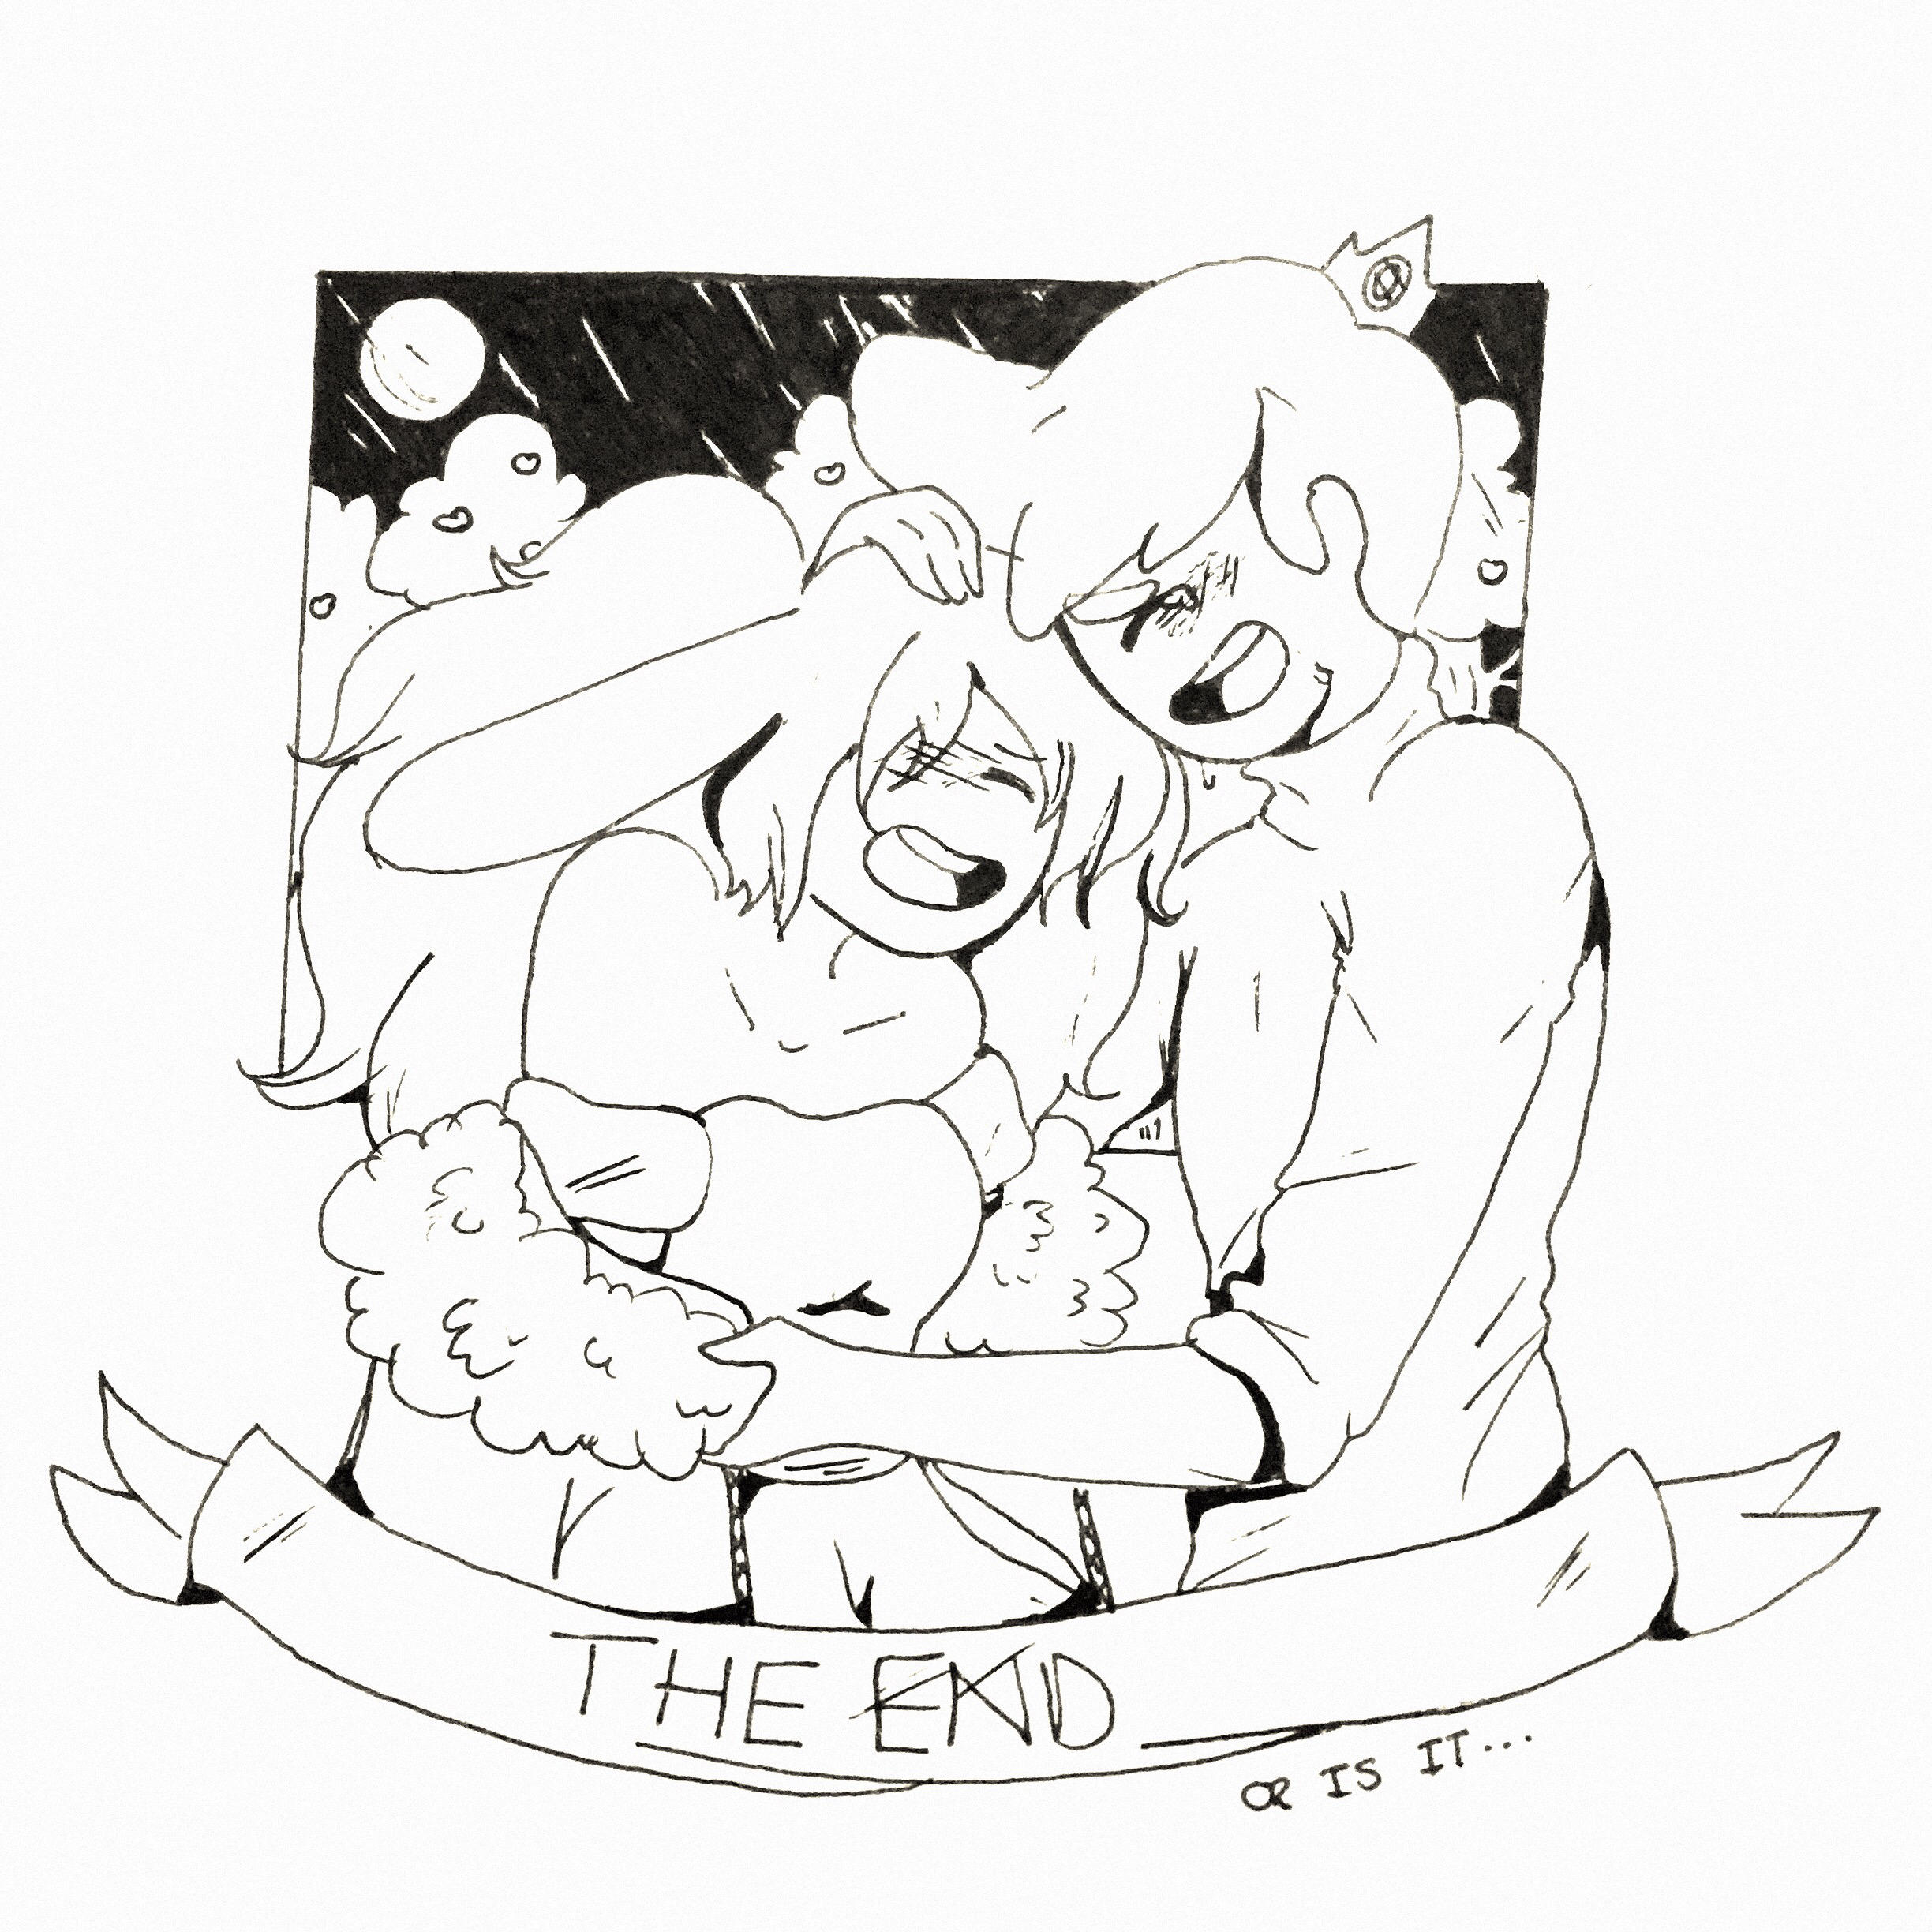 The End Inktober By Geeky Bunny On Deviantart